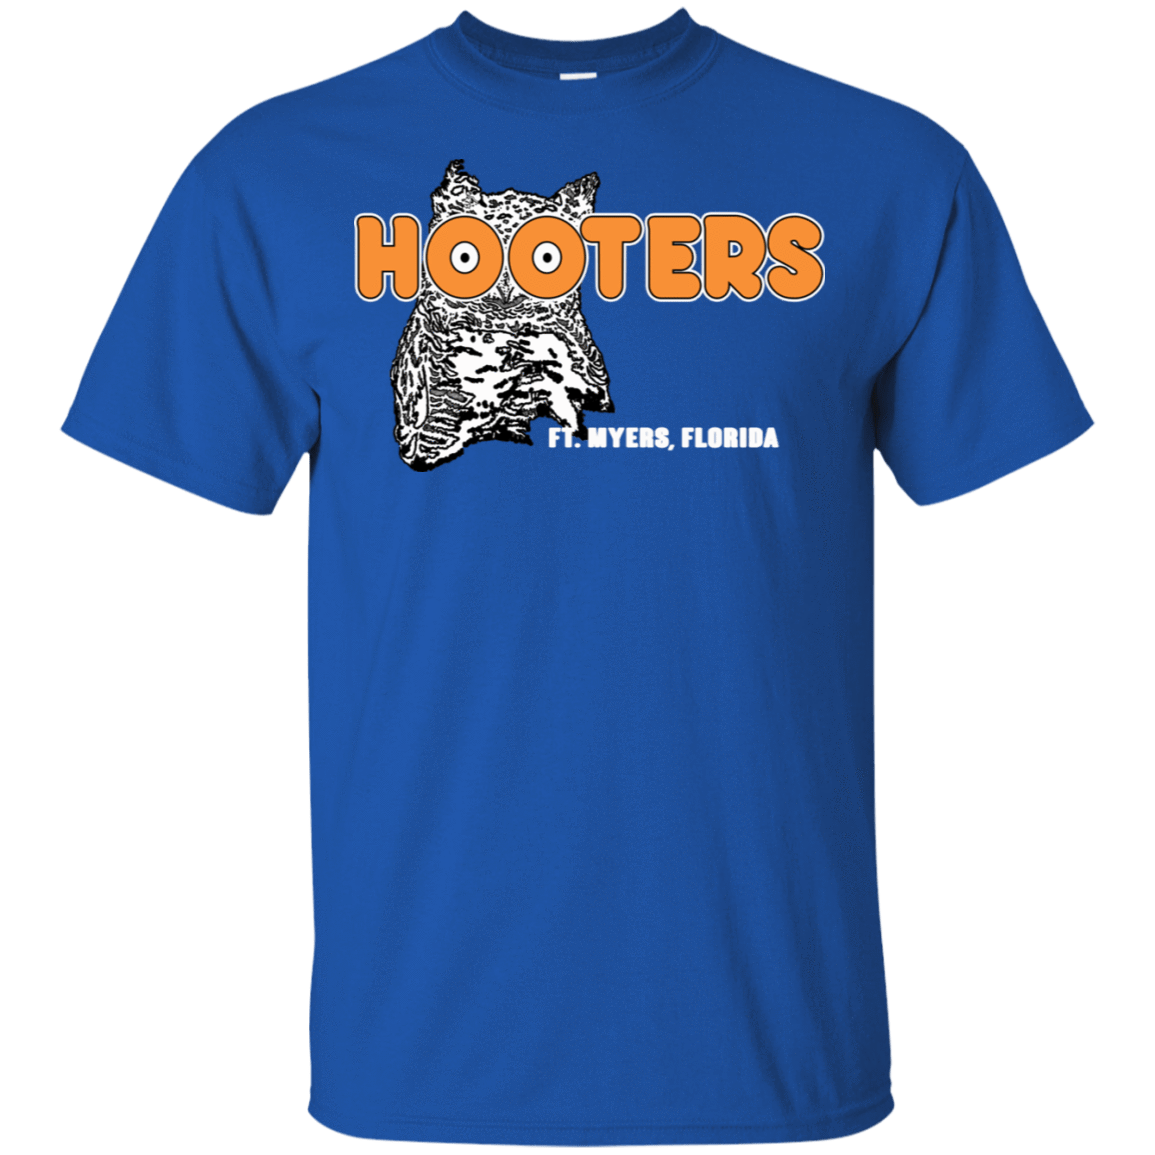 Hooters T-Shirts Fort Myers, Florida 22-110-73155974-249 - Tee Ript